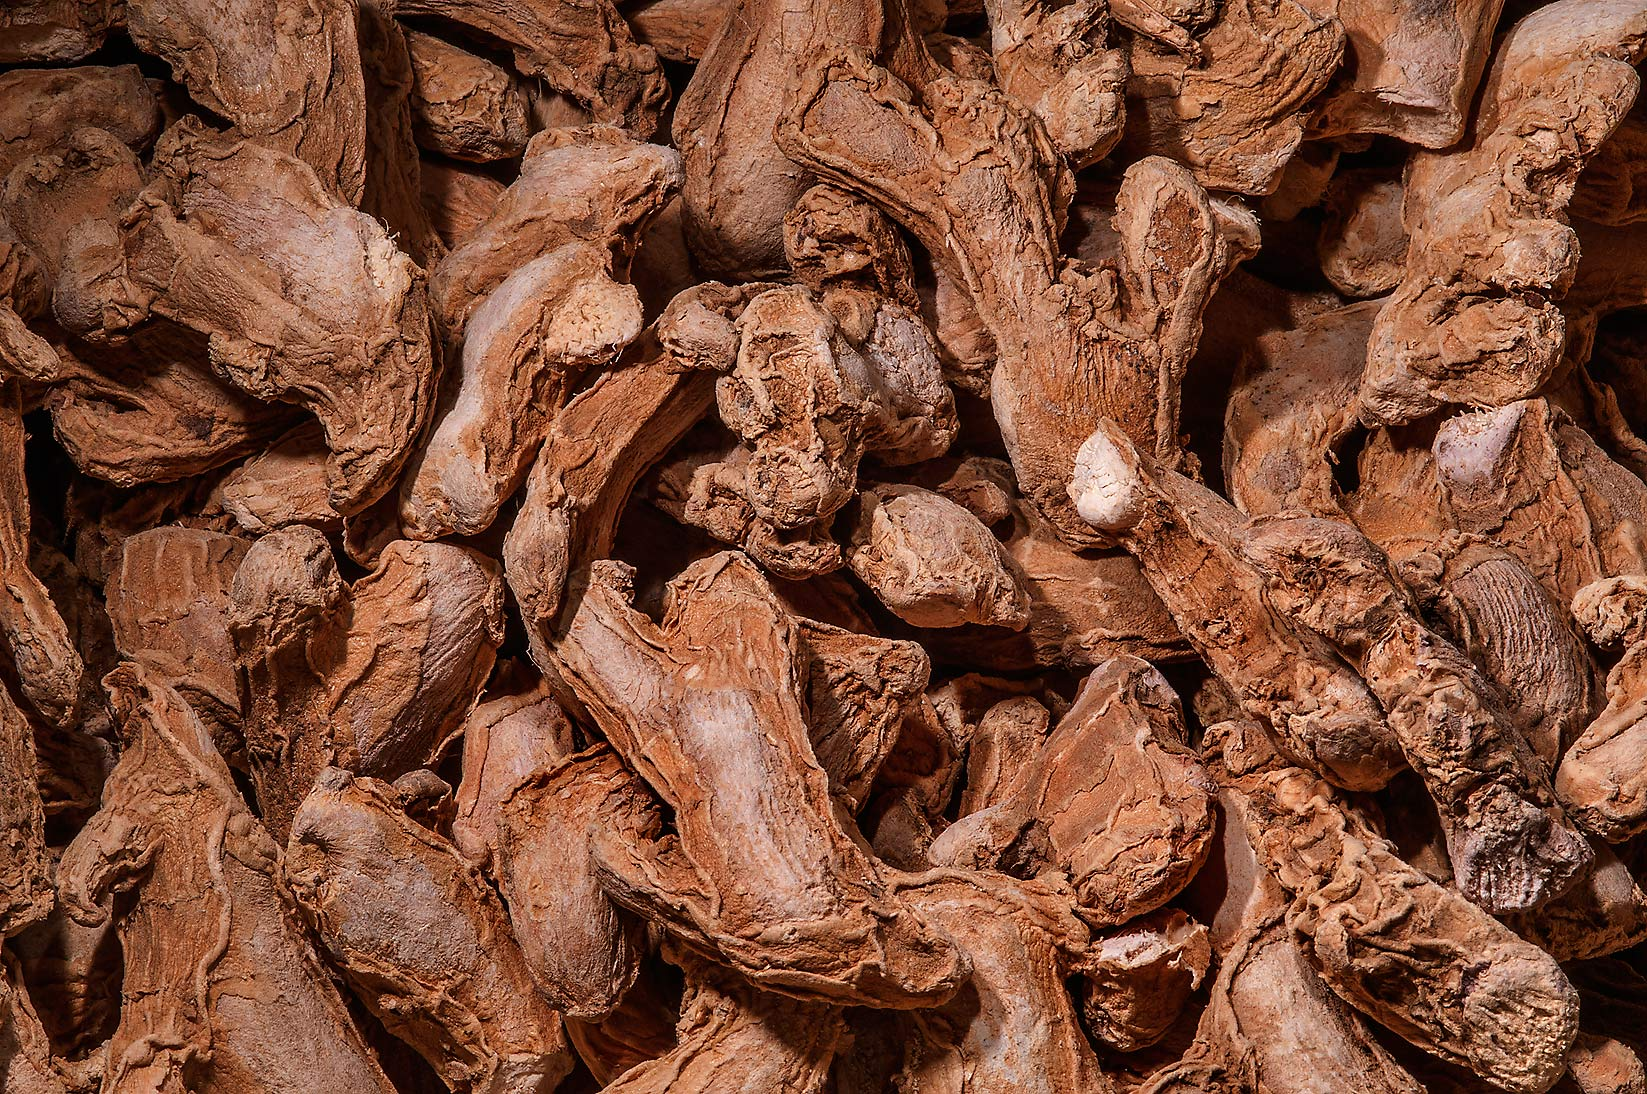 Dried poop of snakes for sale in spice section of Souq Waqif (Old Market). Doha, Qatar